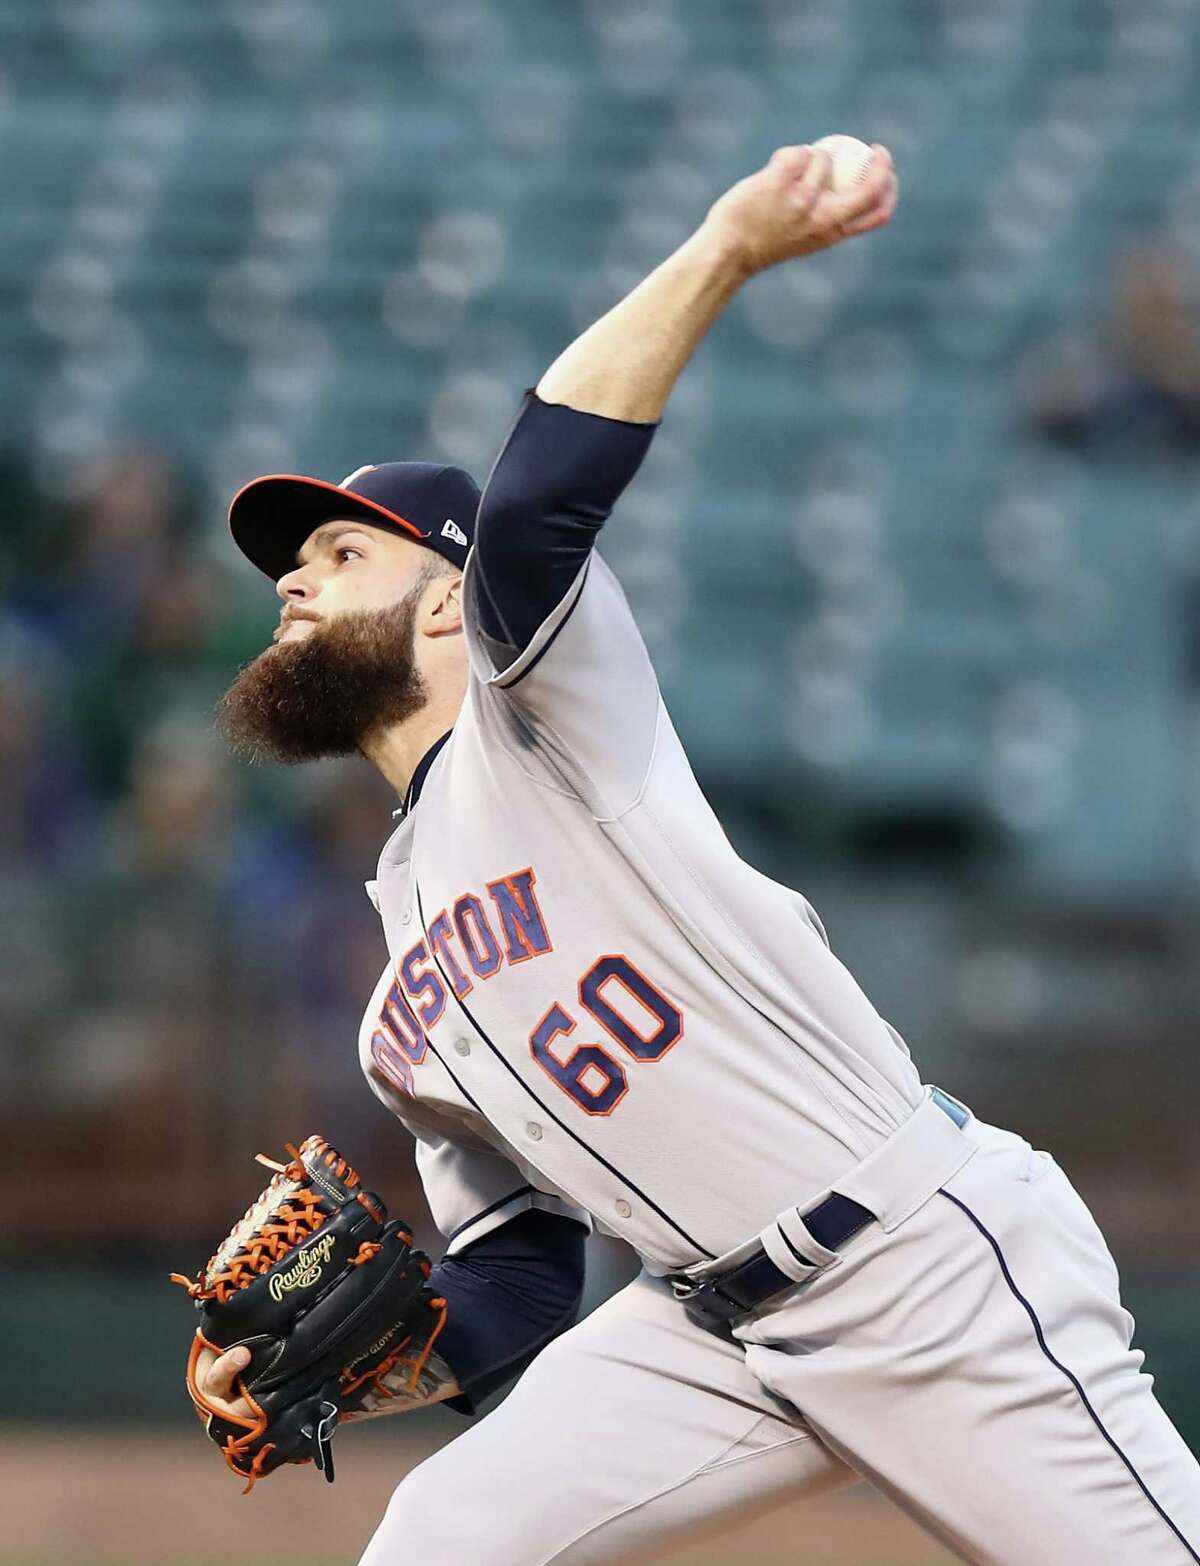 OAKLAND, CA - MAY 07: Dallas Keuchel #60 of the Houston Astros pitches against the Oakland Athletics in the first inning at Oakland Alameda Coliseum on May 7, 2018 in Oakland, California.